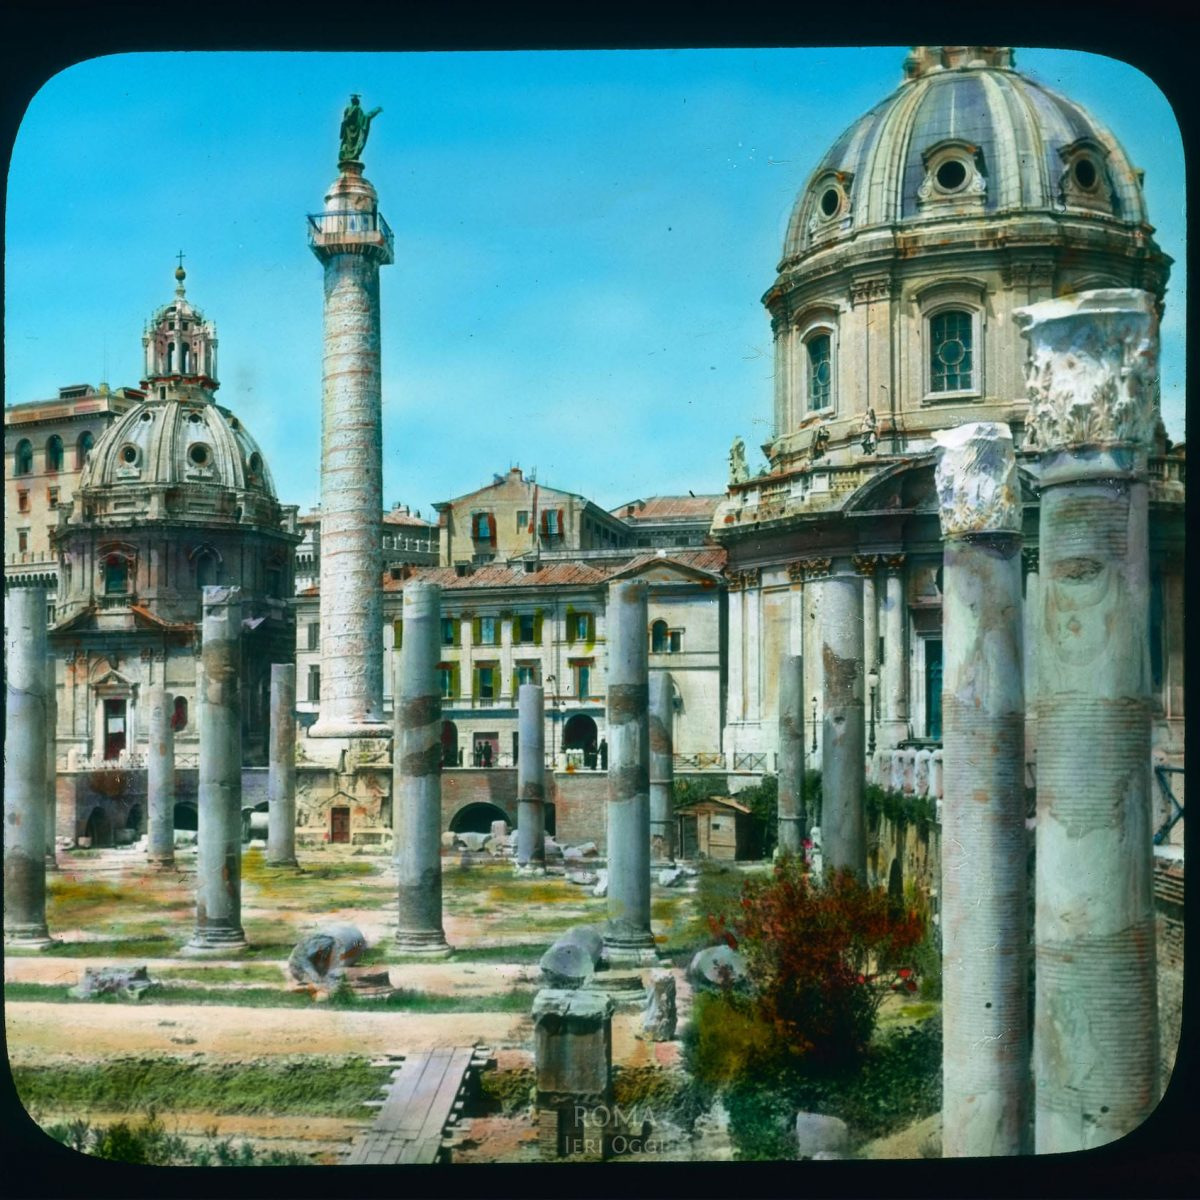 Rome. Trajan's Forum: Trajan's Column and two churches, Santa Maria di Loreto and Santissimo Nome di Maria View in tinted lantern slide, ca. 1919-1938. The column dates from 113 C.E., Santa Maria di Loreto from the 16th century, and Santissimo Nome di Maria, by Antoine Derize, from 1736-1741.